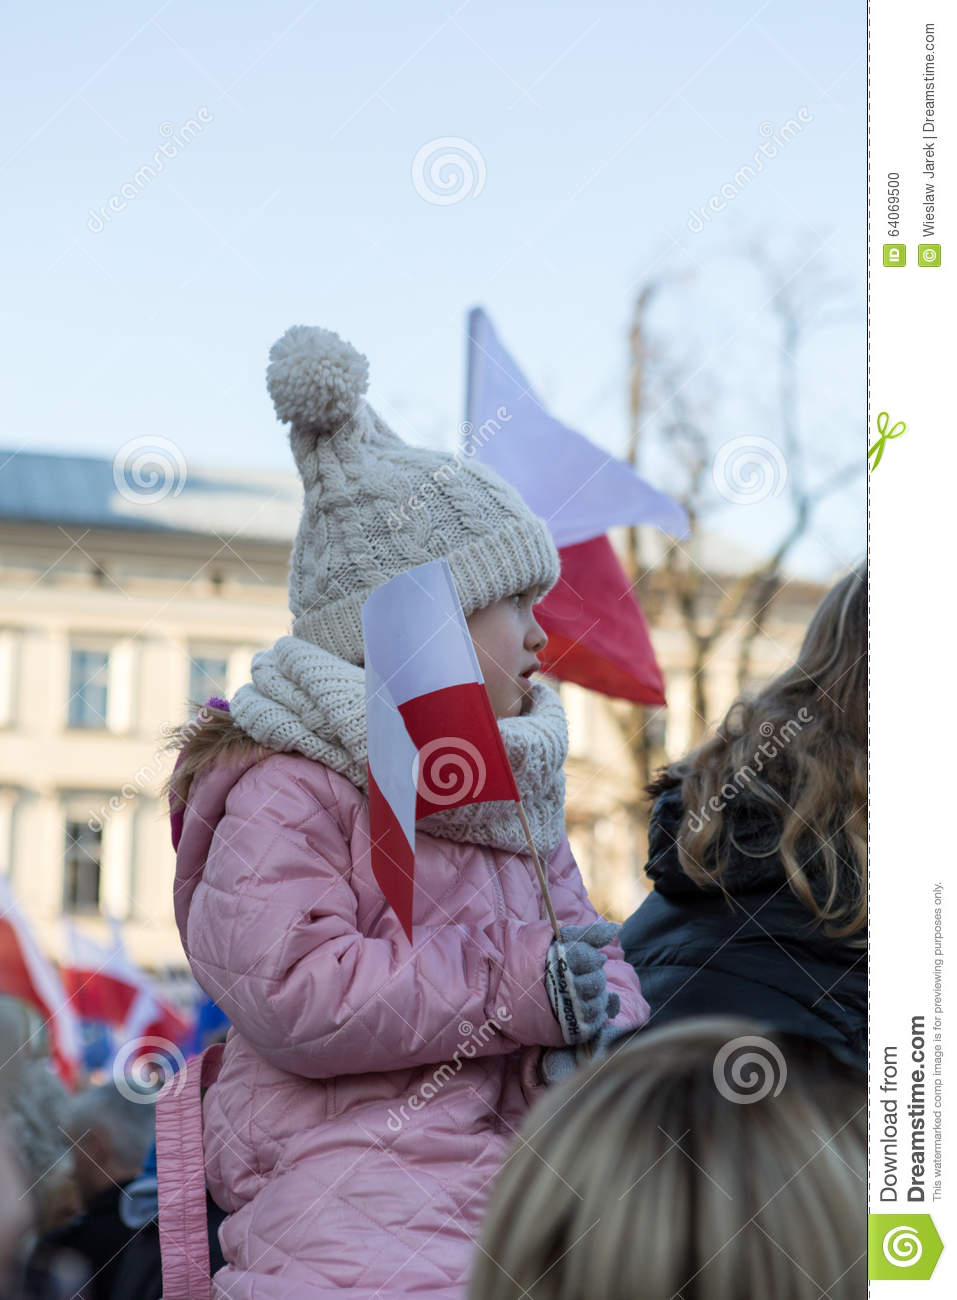 Cracow, Main Square - The demonstration of the Committee of the Protection of Democracy